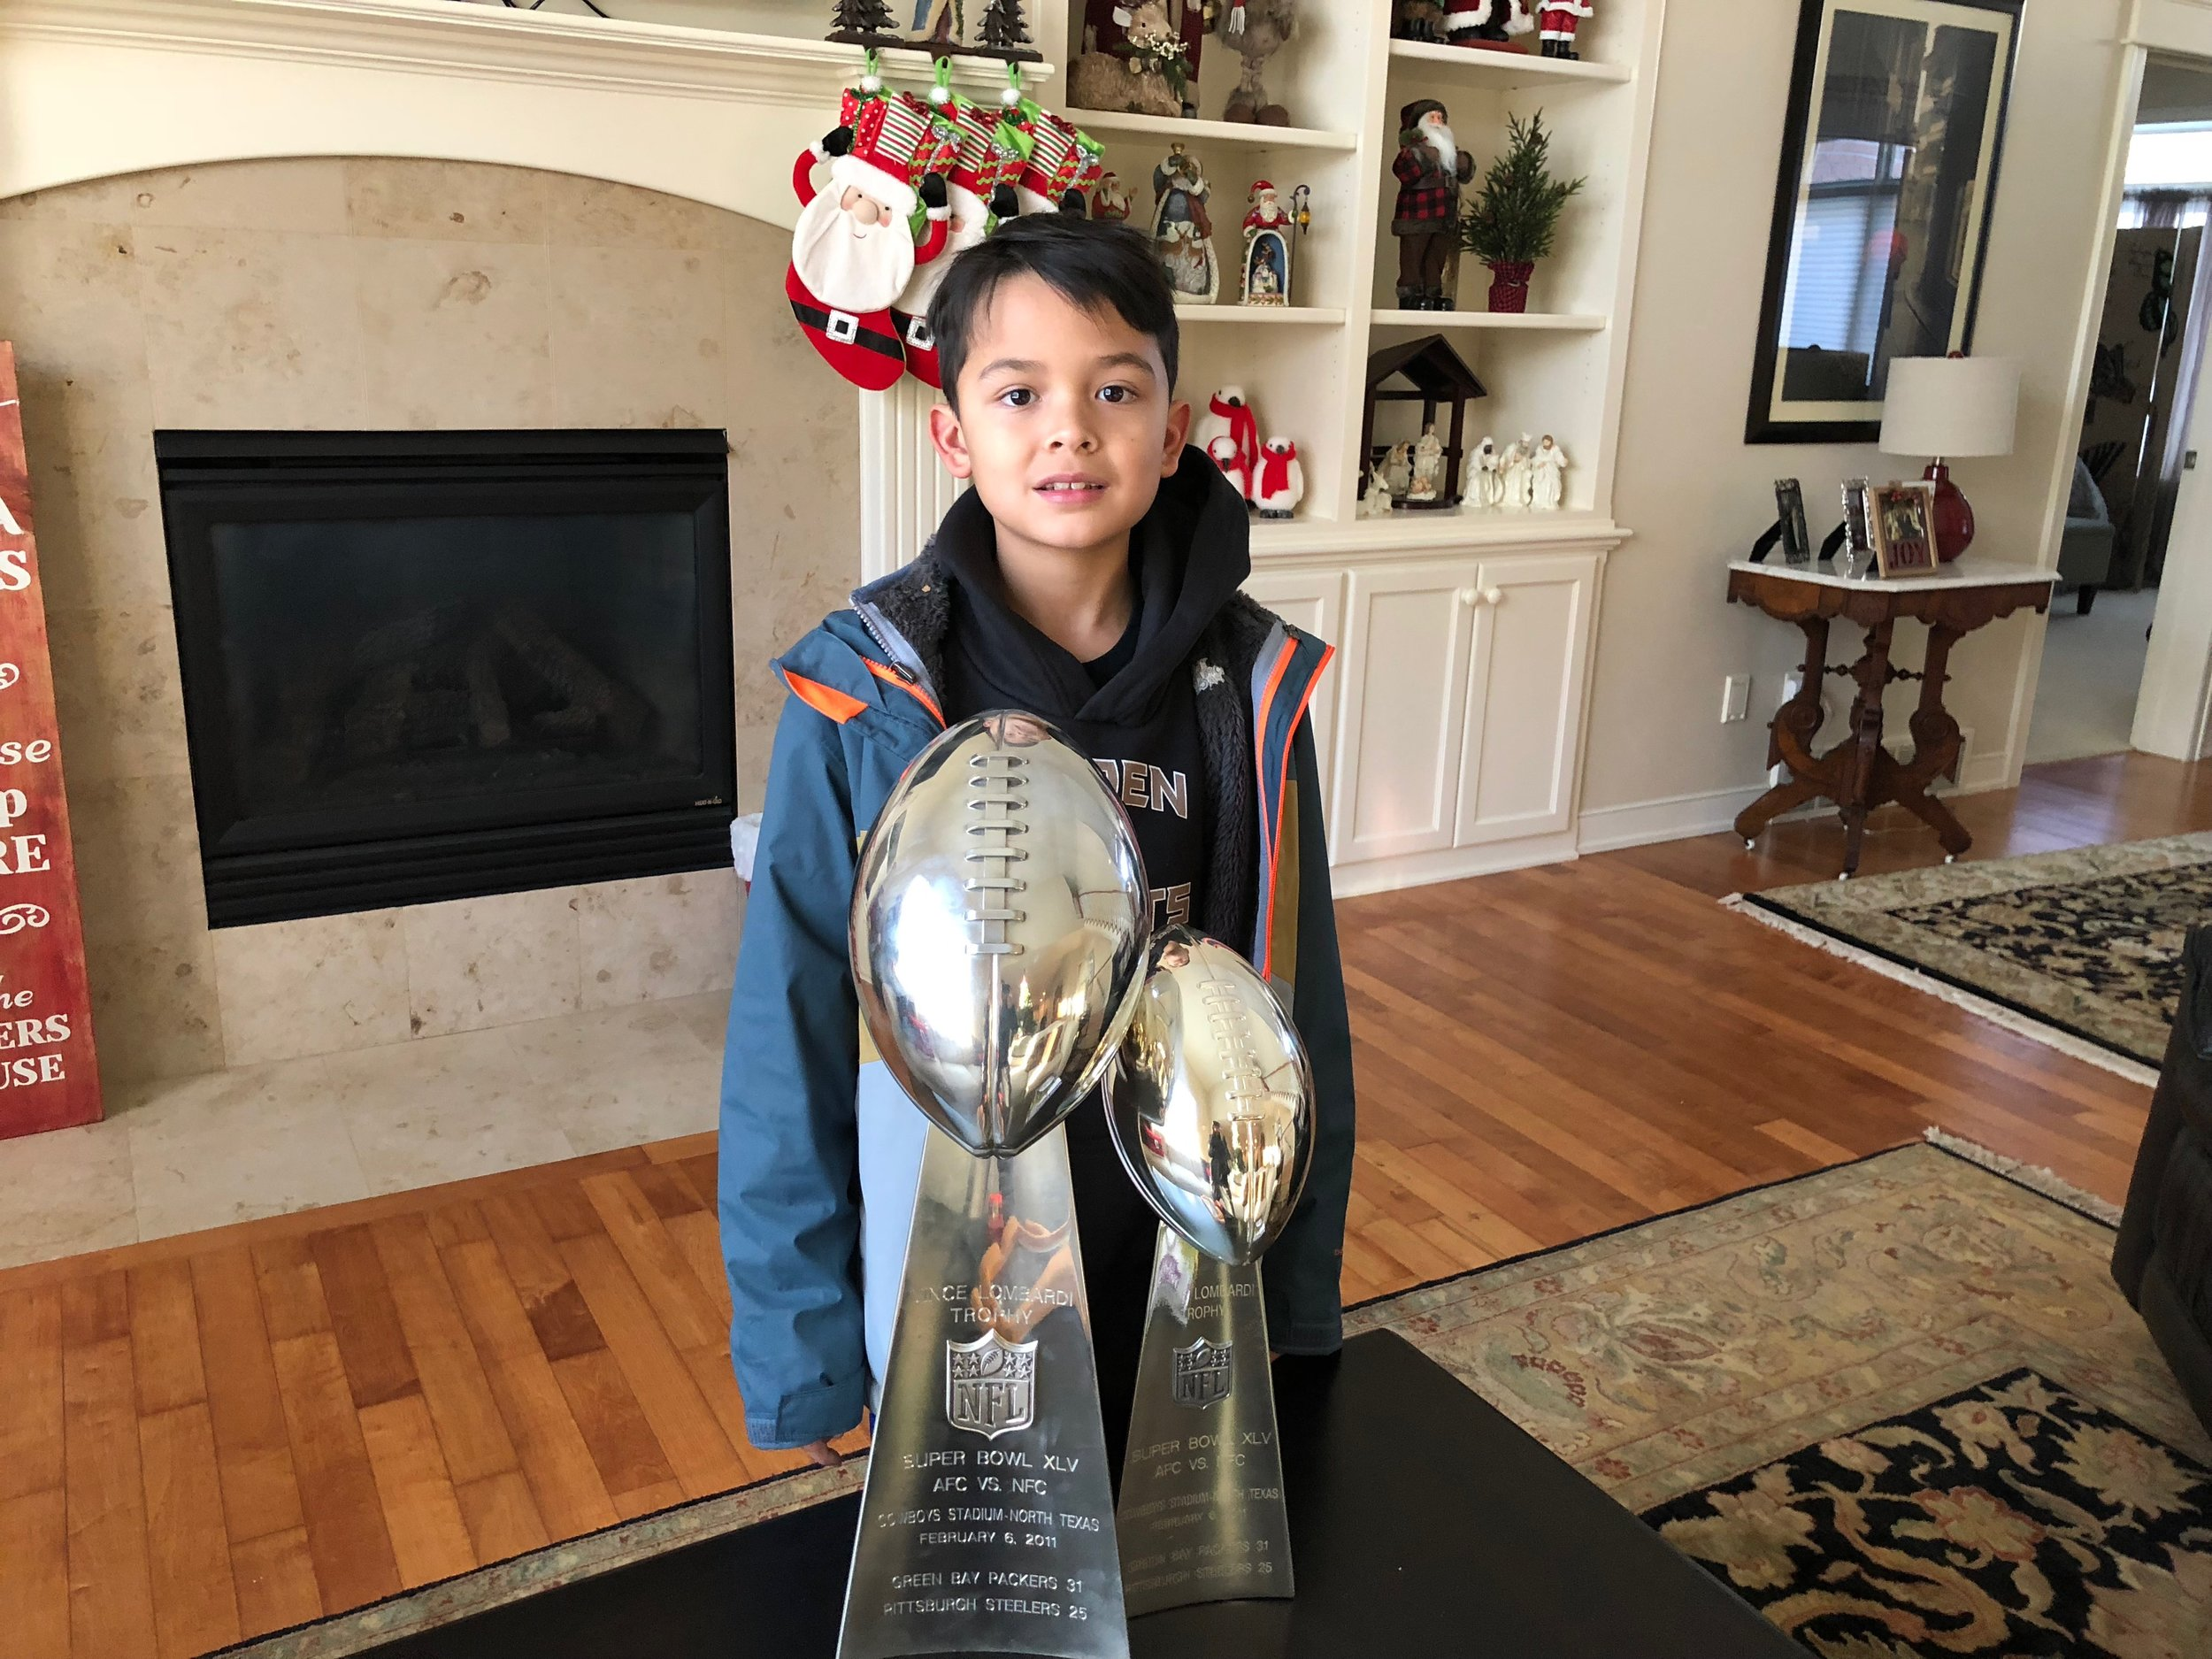 Instagram Message: I used to pray for things like these Lombardi trophies. Check Thoughtfulpinch.com for what I pray for these days - couldn't fit it all in one so I wrote 2 posts this week!